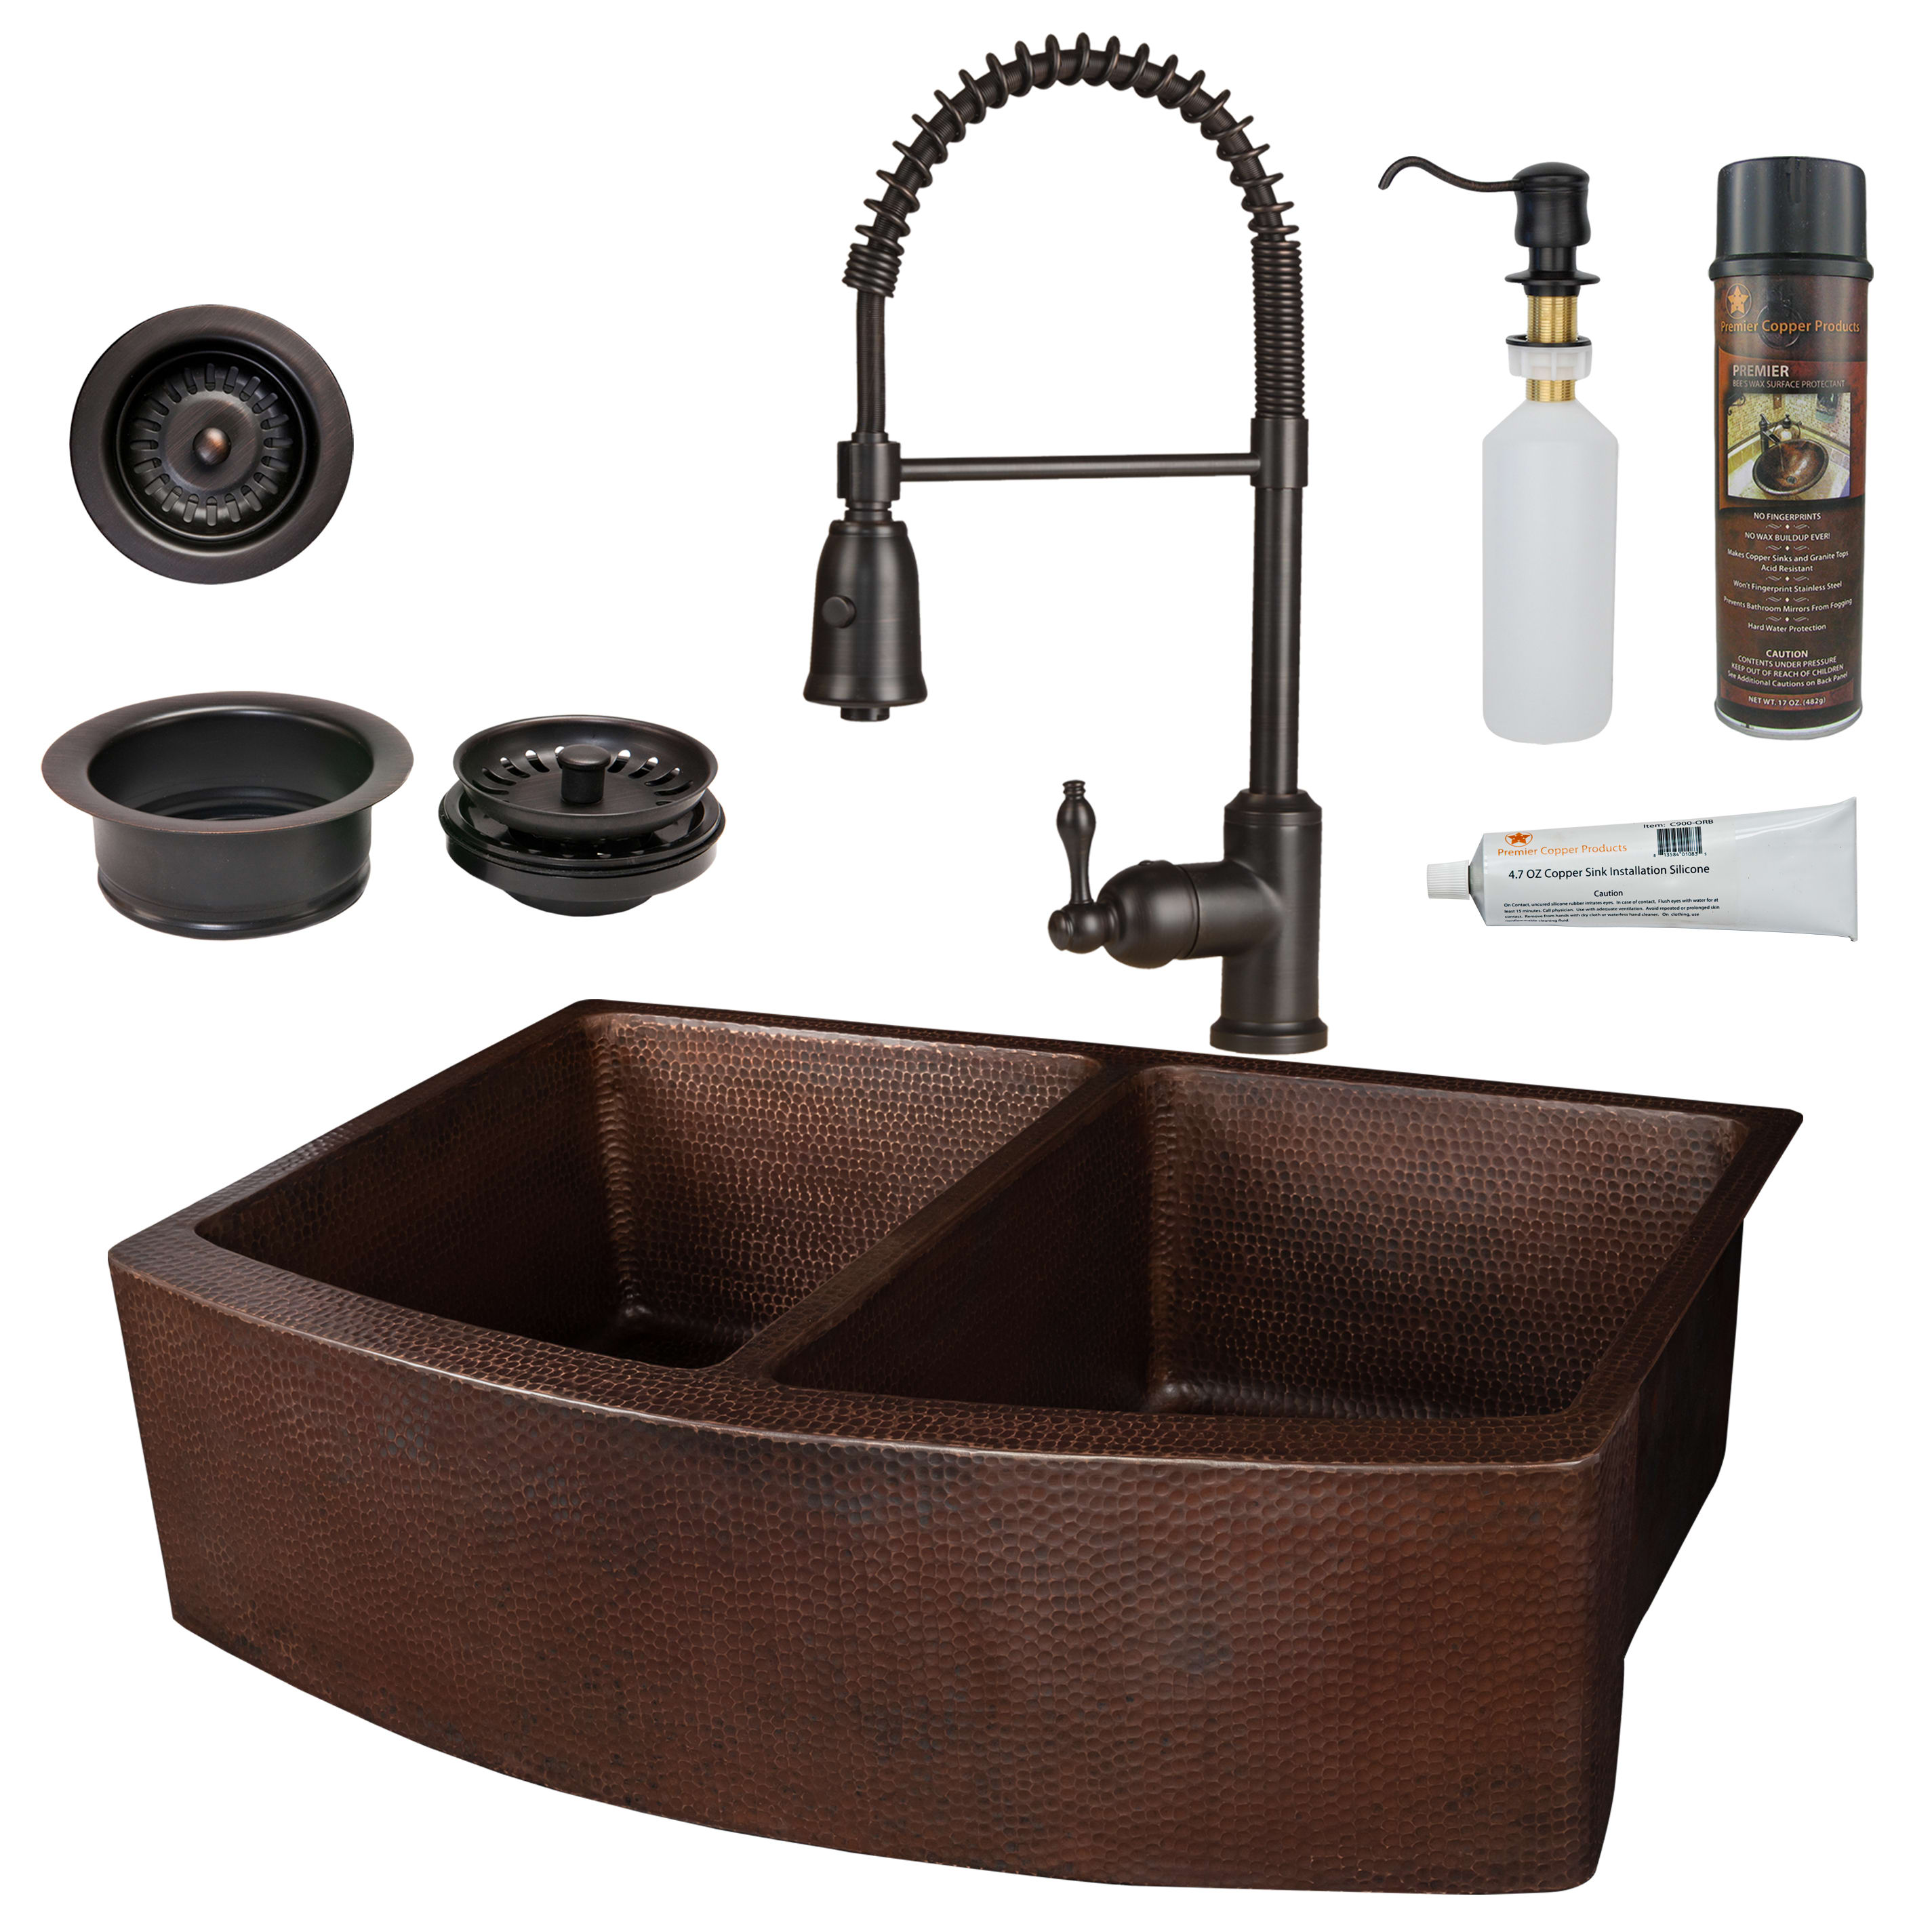 Oil Rubbed Bronze Farmhouse Sink.Premier Copper Products Ksp4 Ka50rdb33249